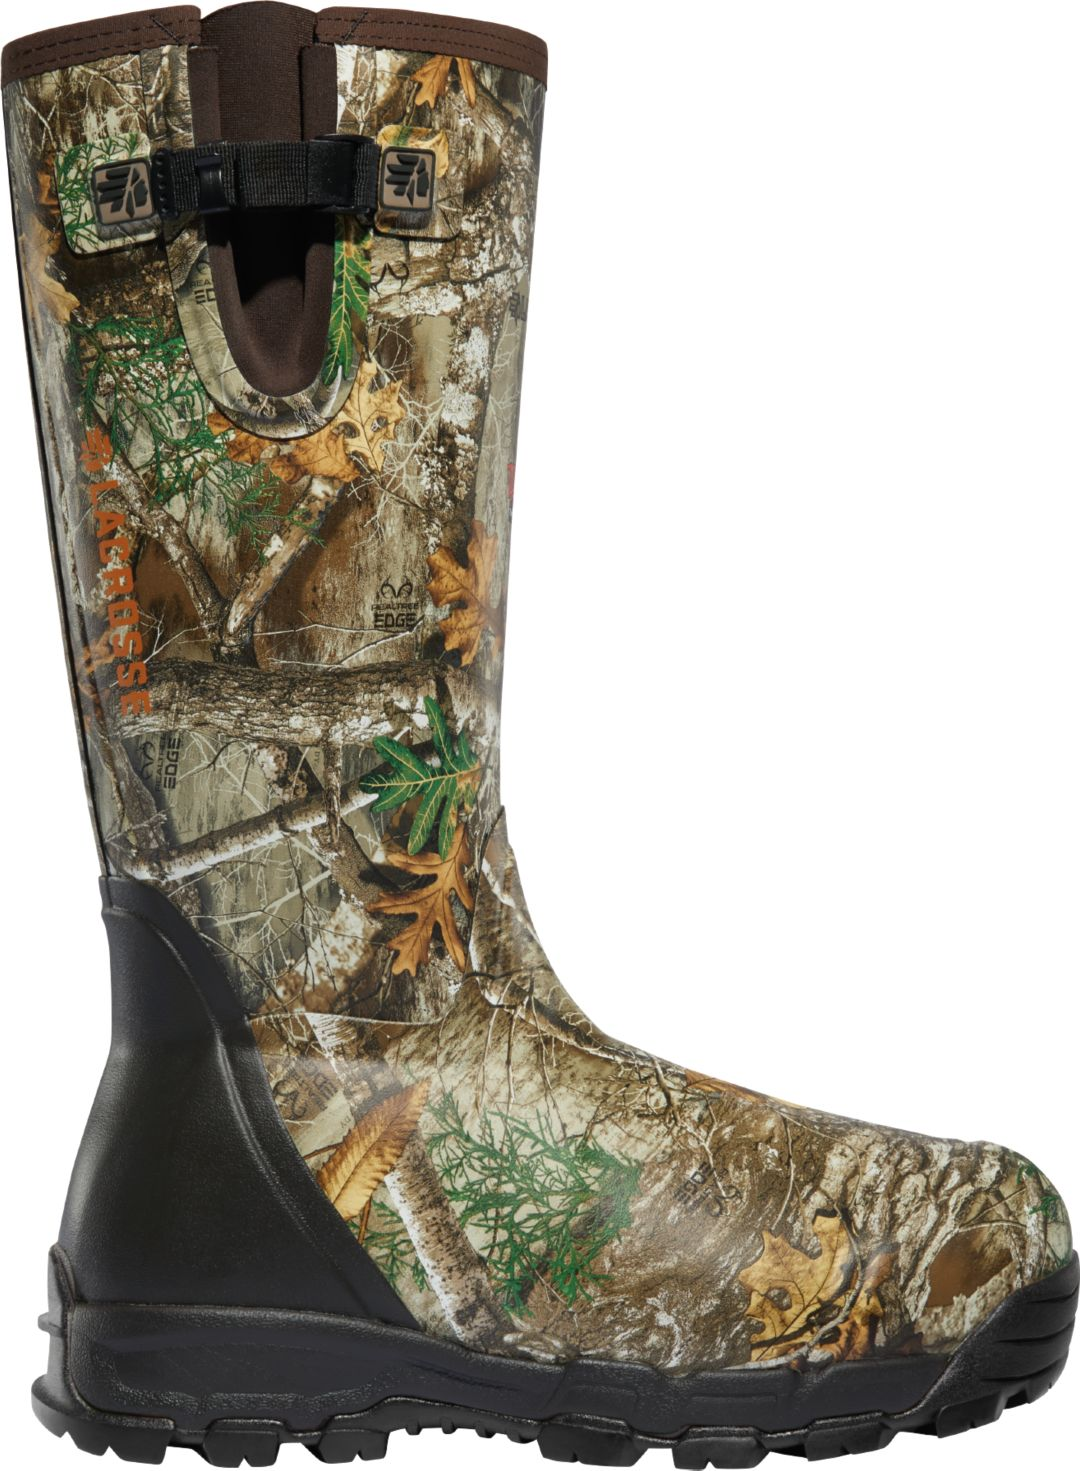 334a970419f LaCrosse Men's Alphaburly Pro Side-Zip 18'' Realtree Edge 1000g Rubber  Hunting Boots